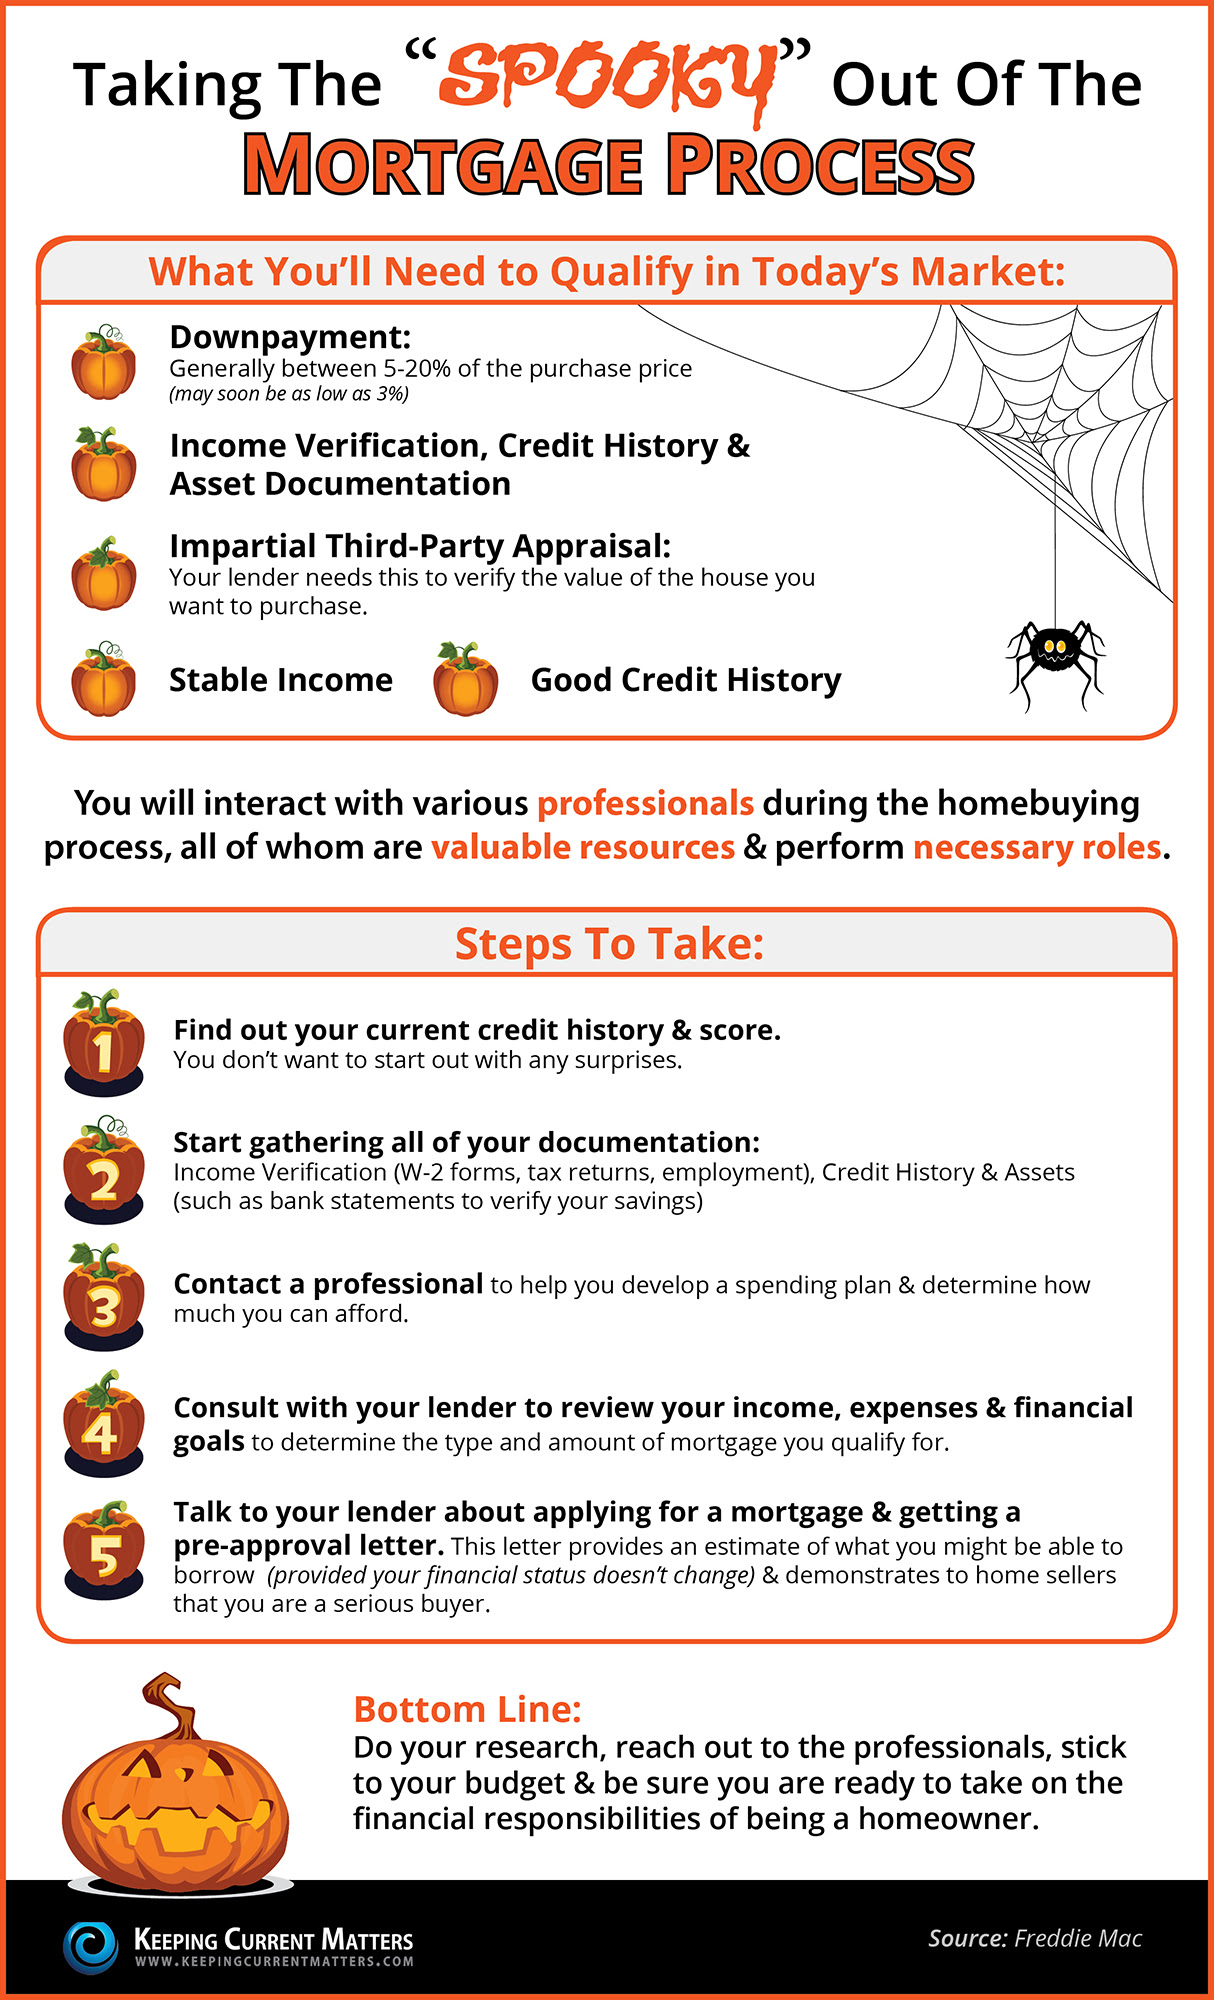 Taking the Spooky Out of the Mortgage Process